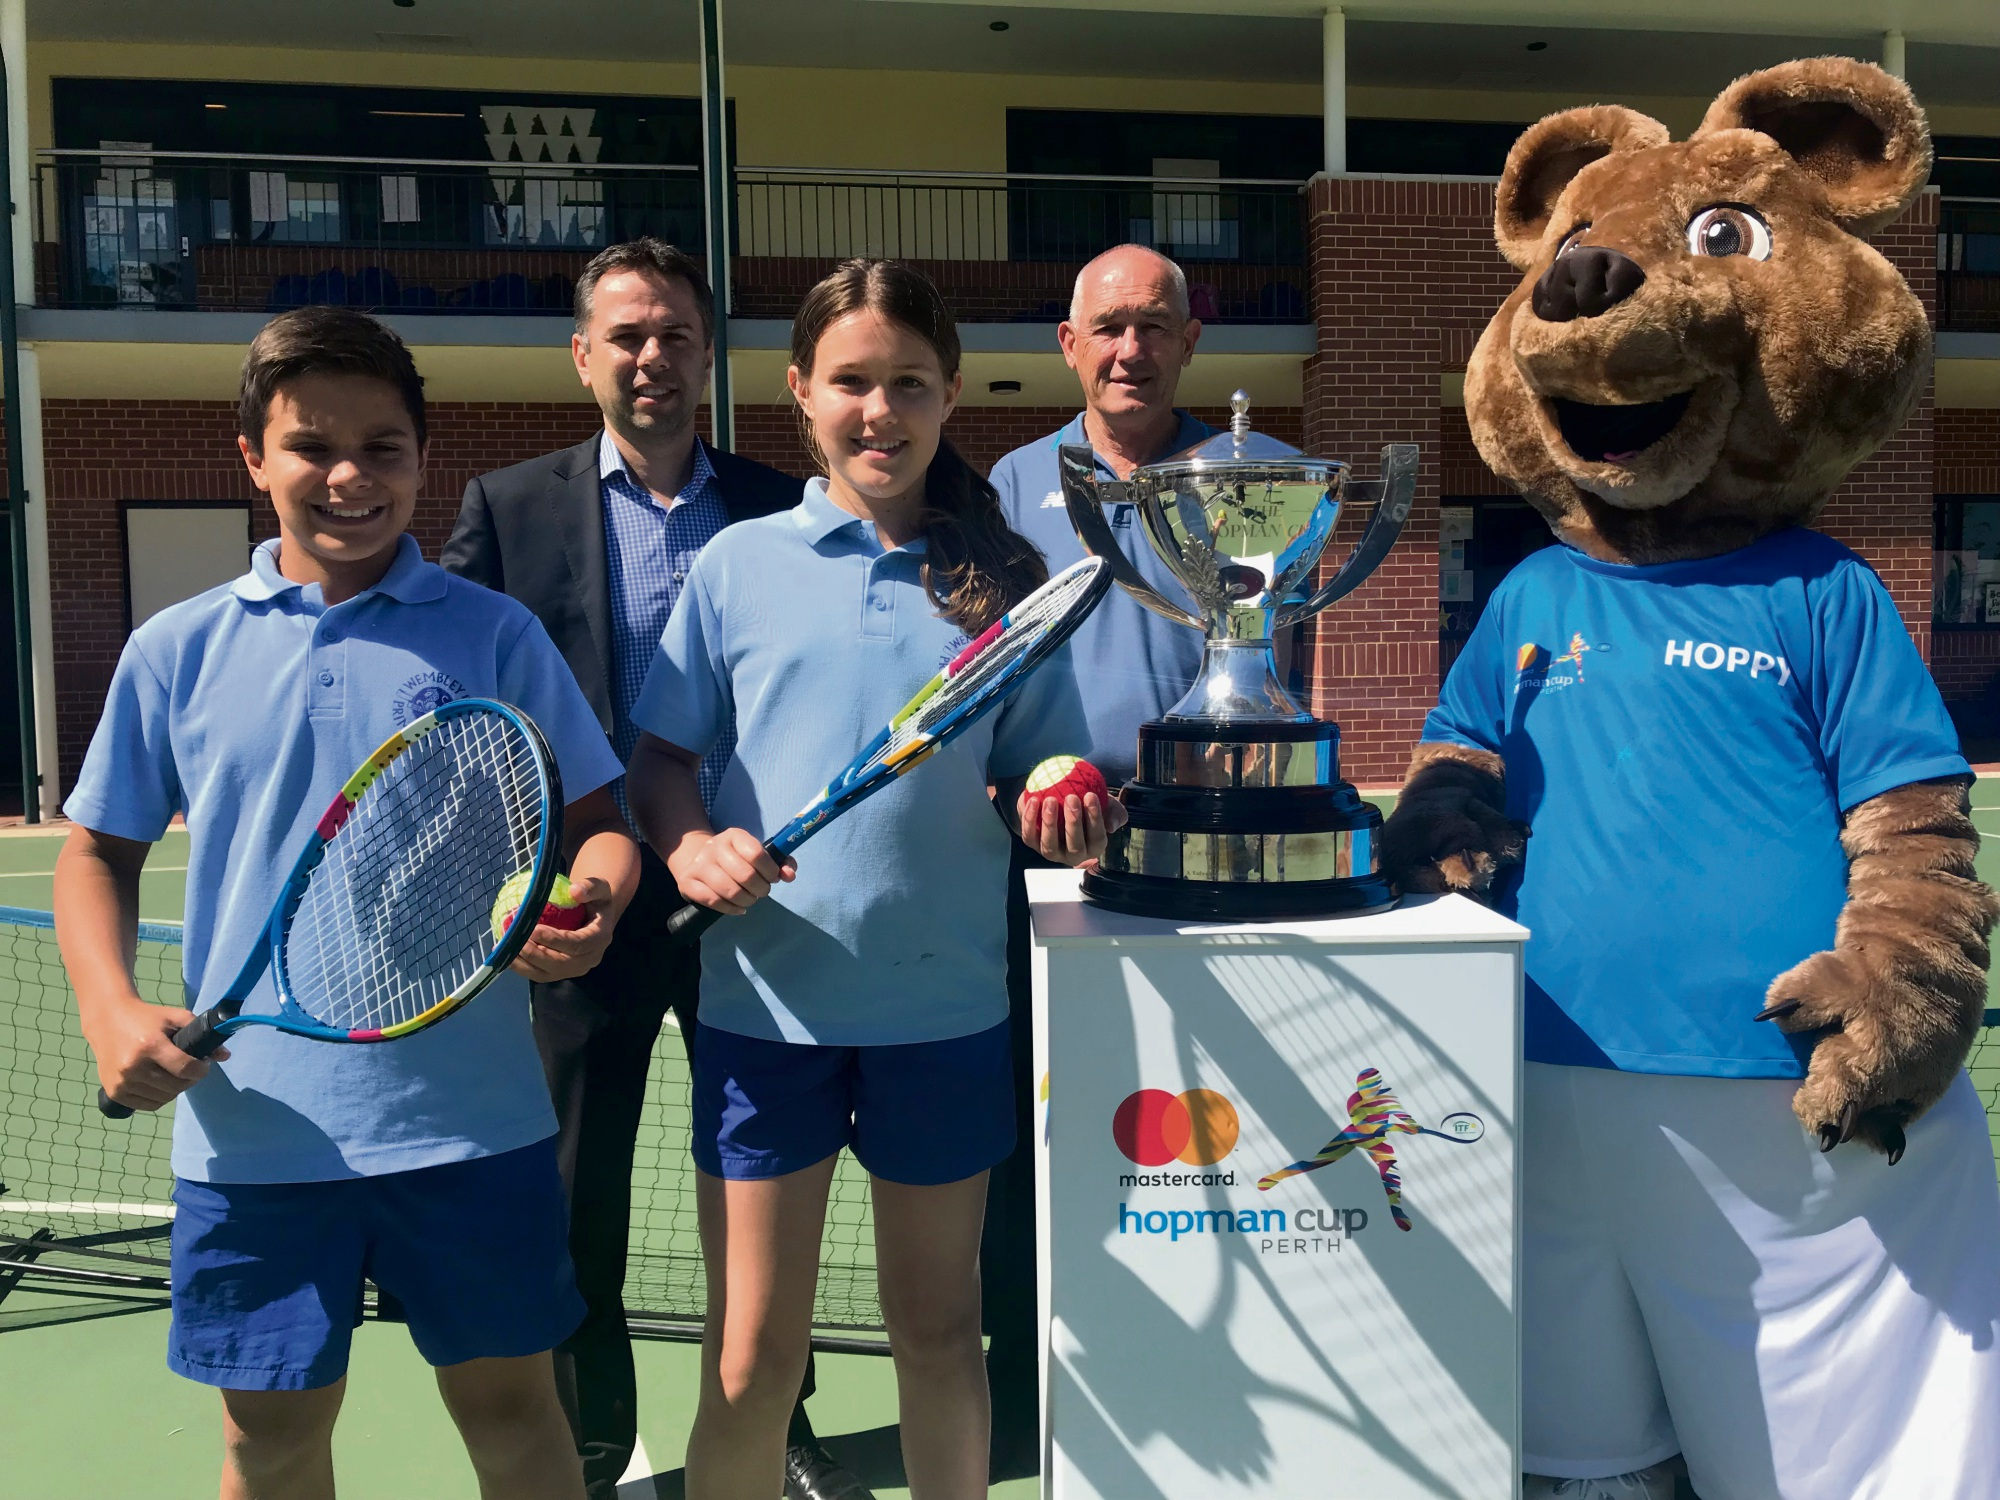 Seb Broley (12), Tennis West chief executive Michael Roberts, Hannah Gordon-Smith (11), Tennis West president Wayne Firns and Hoppy the quokka at Wembley Primary School this morning.